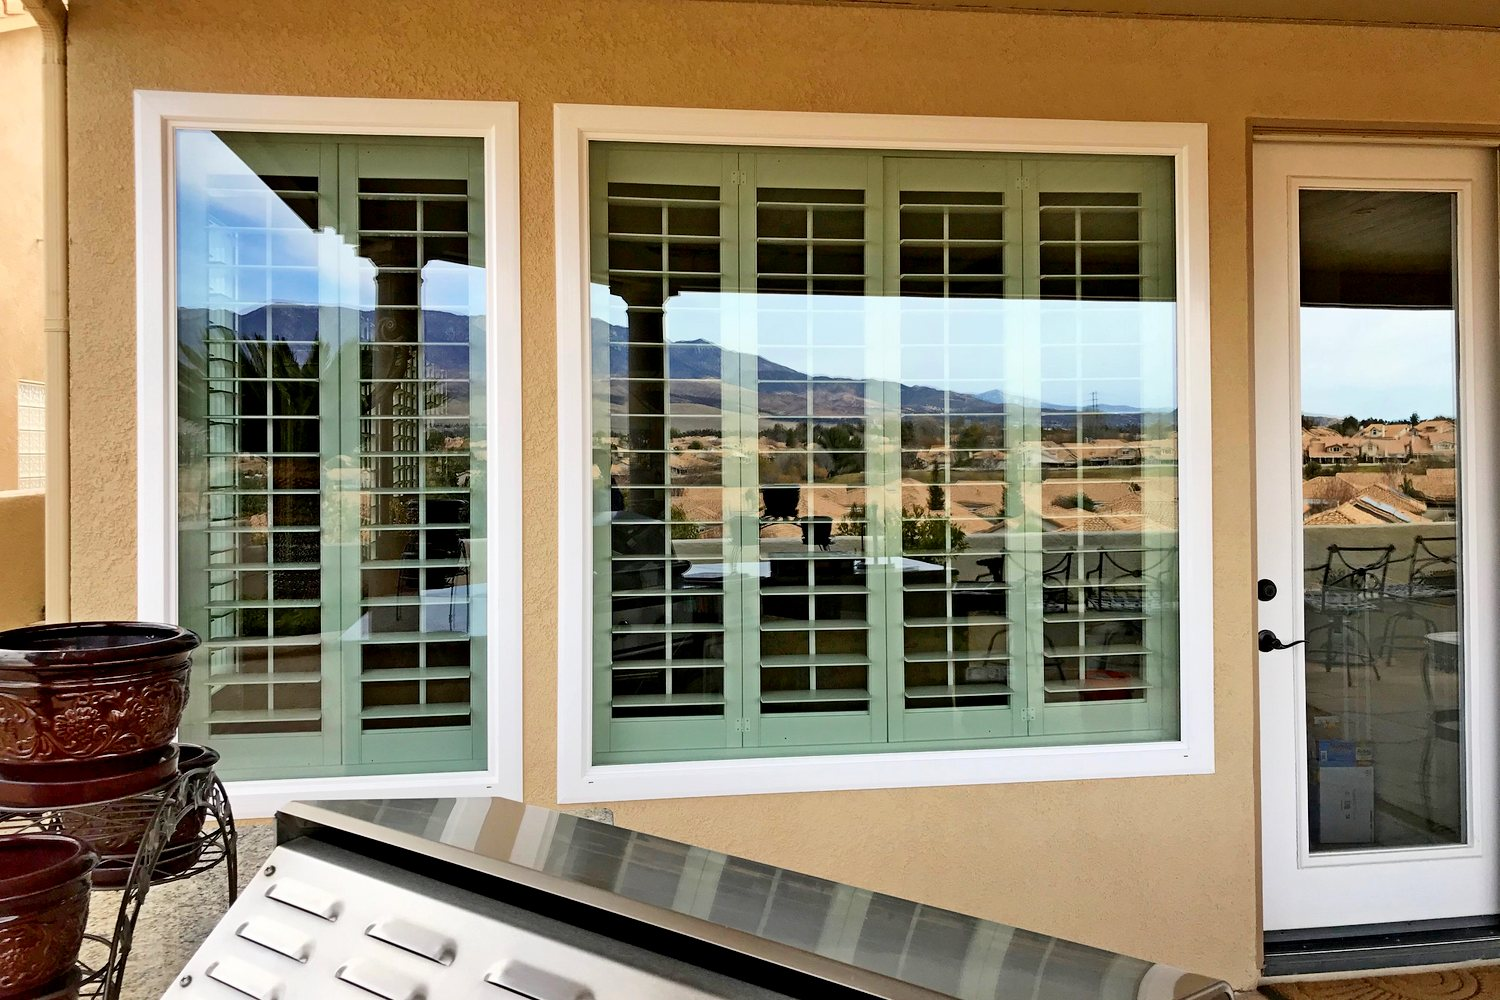 Del Mar Window Replacement in Banning, CA